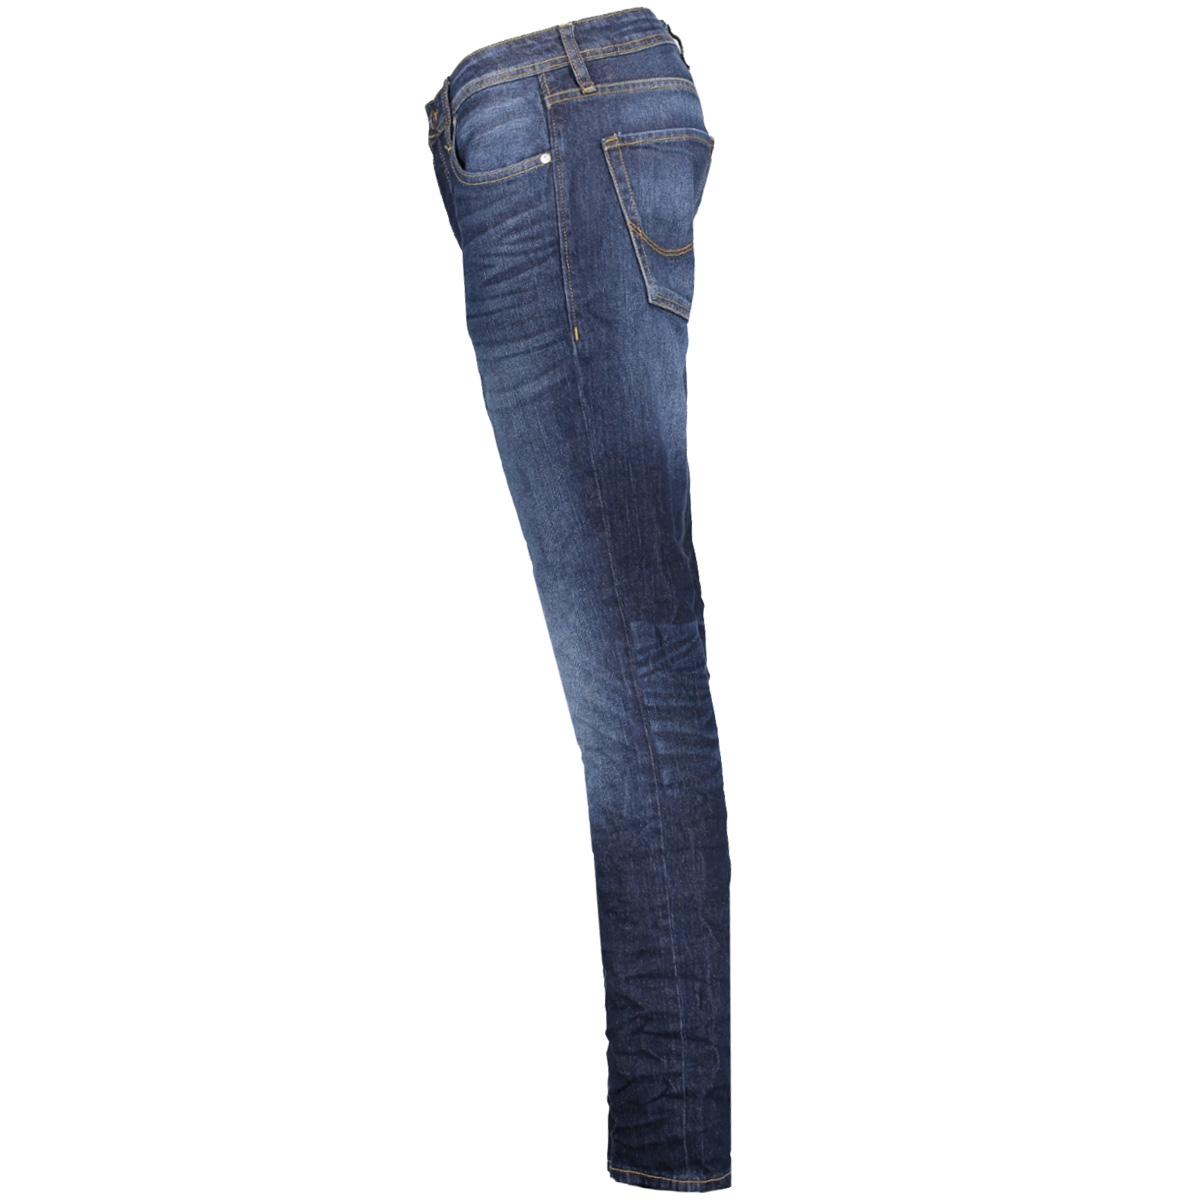 jjitim jjoriginal cr 006 noos 12127242 jack & jones jeans blue denim